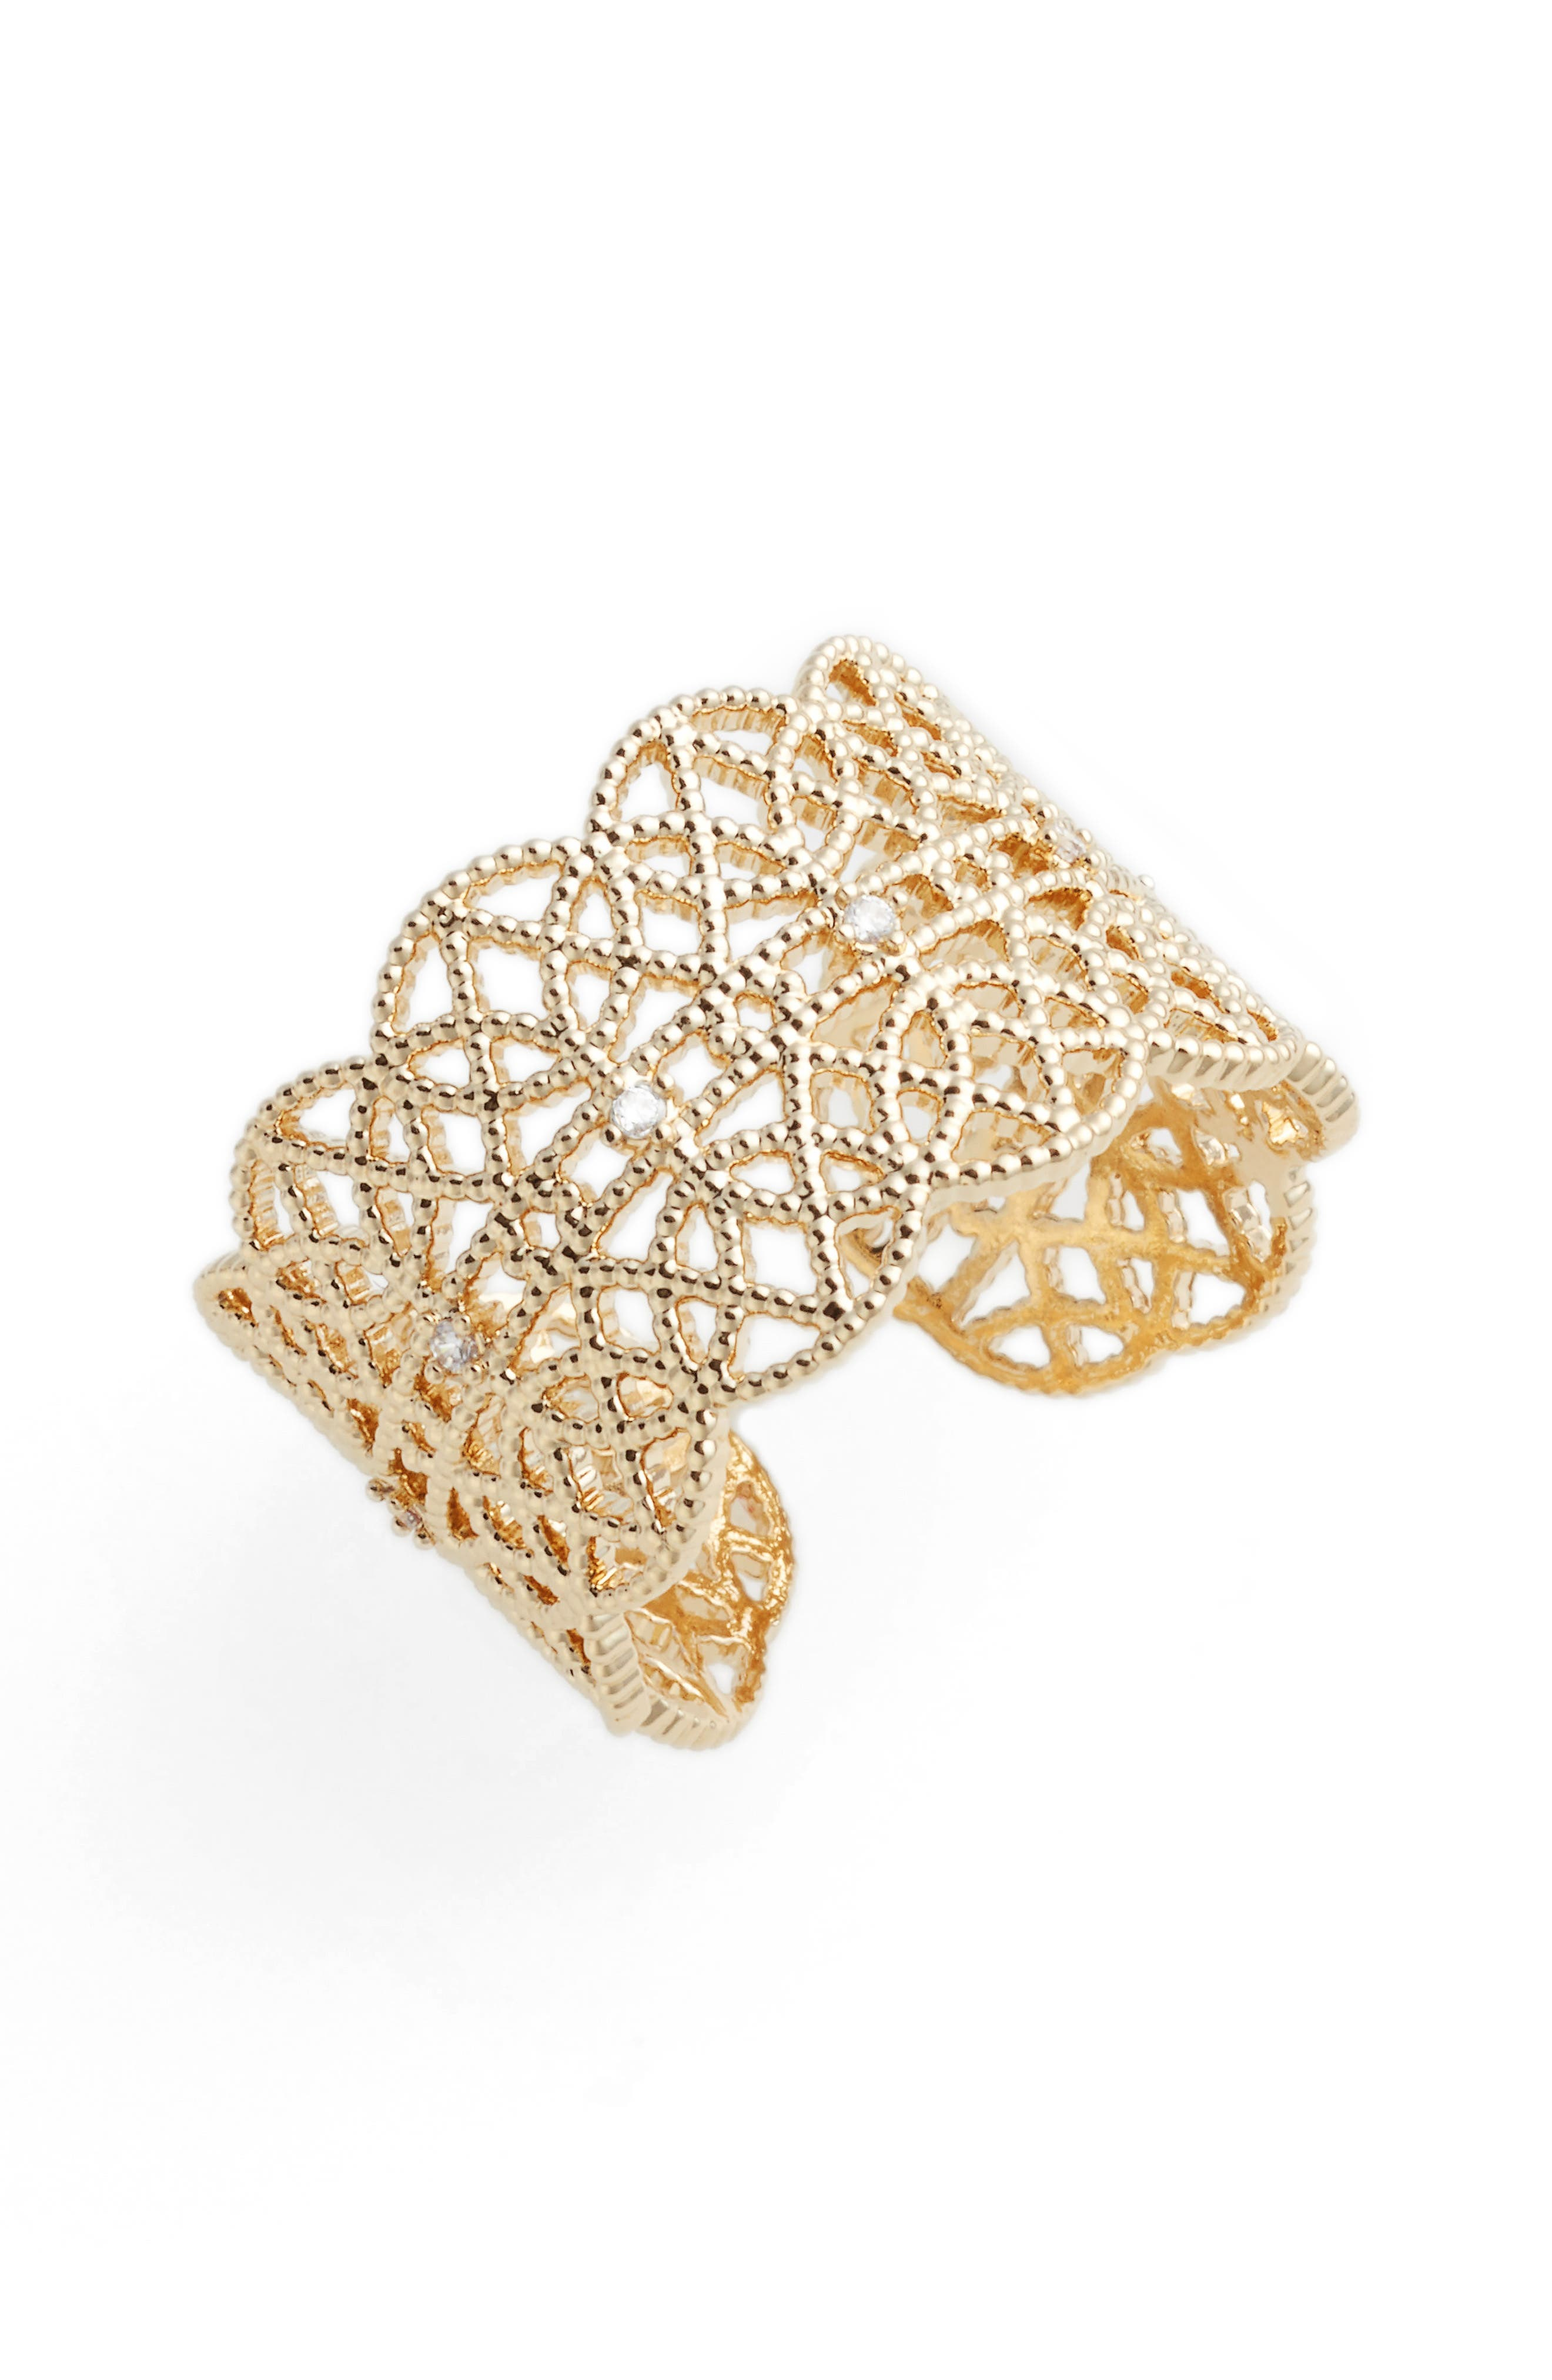 Pavé Lace Cuff Ring,                             Main thumbnail 1, color,                             YELLOW GOLD